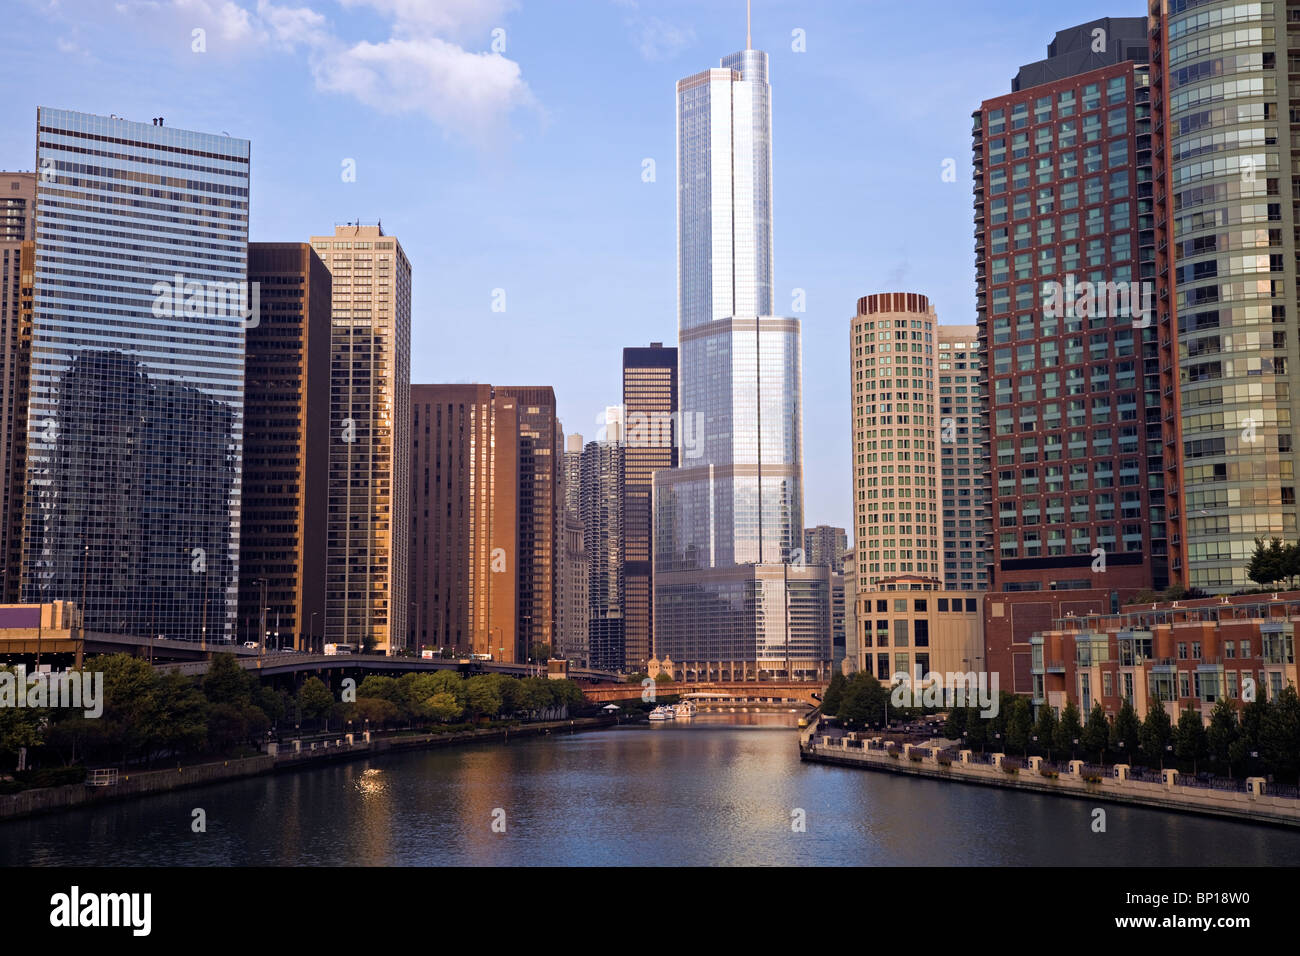 Trump Tower in downtown Chicago - Stock Image